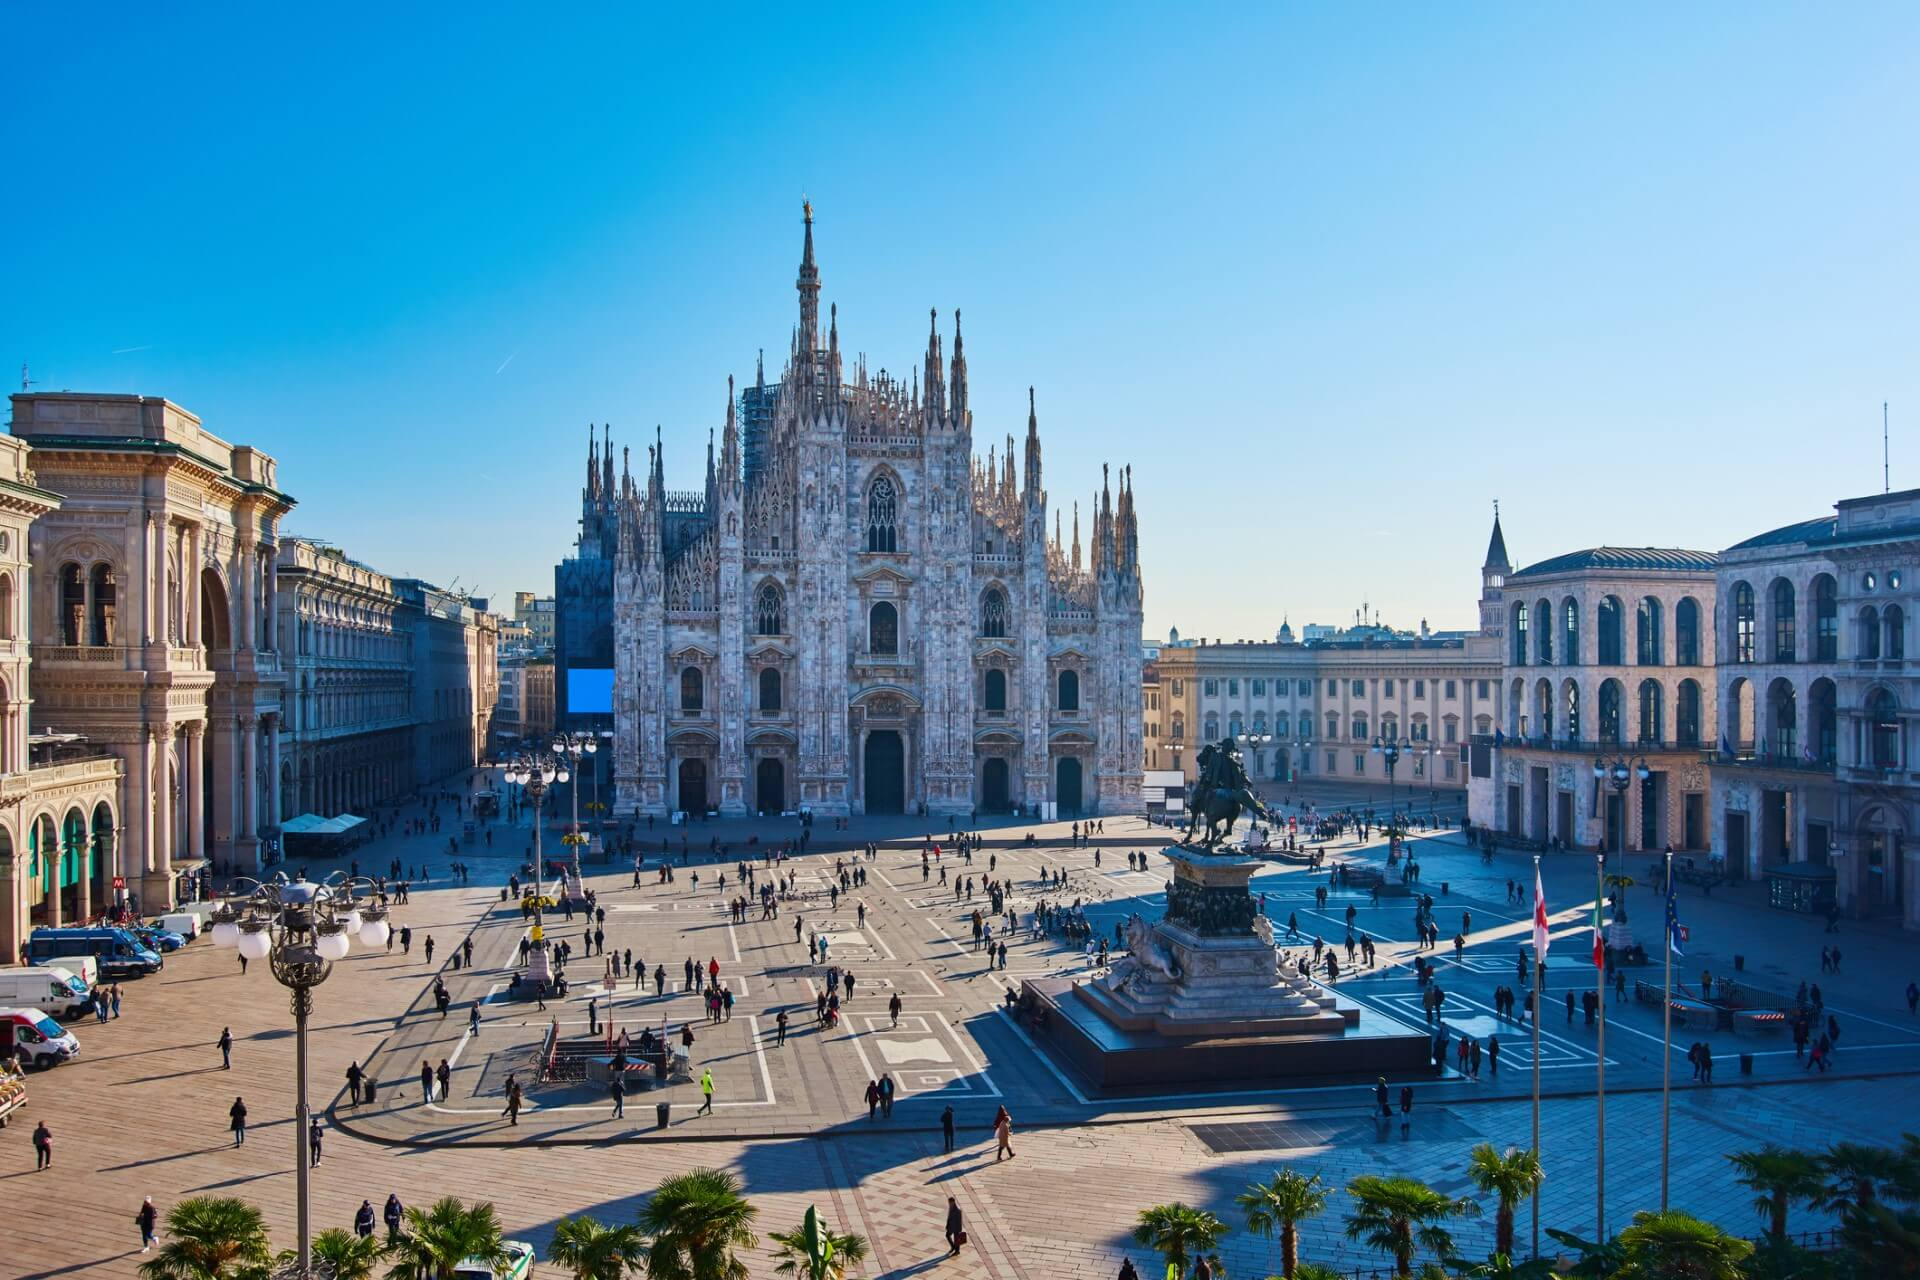 A shot of the Duomo di Milano in Italy.